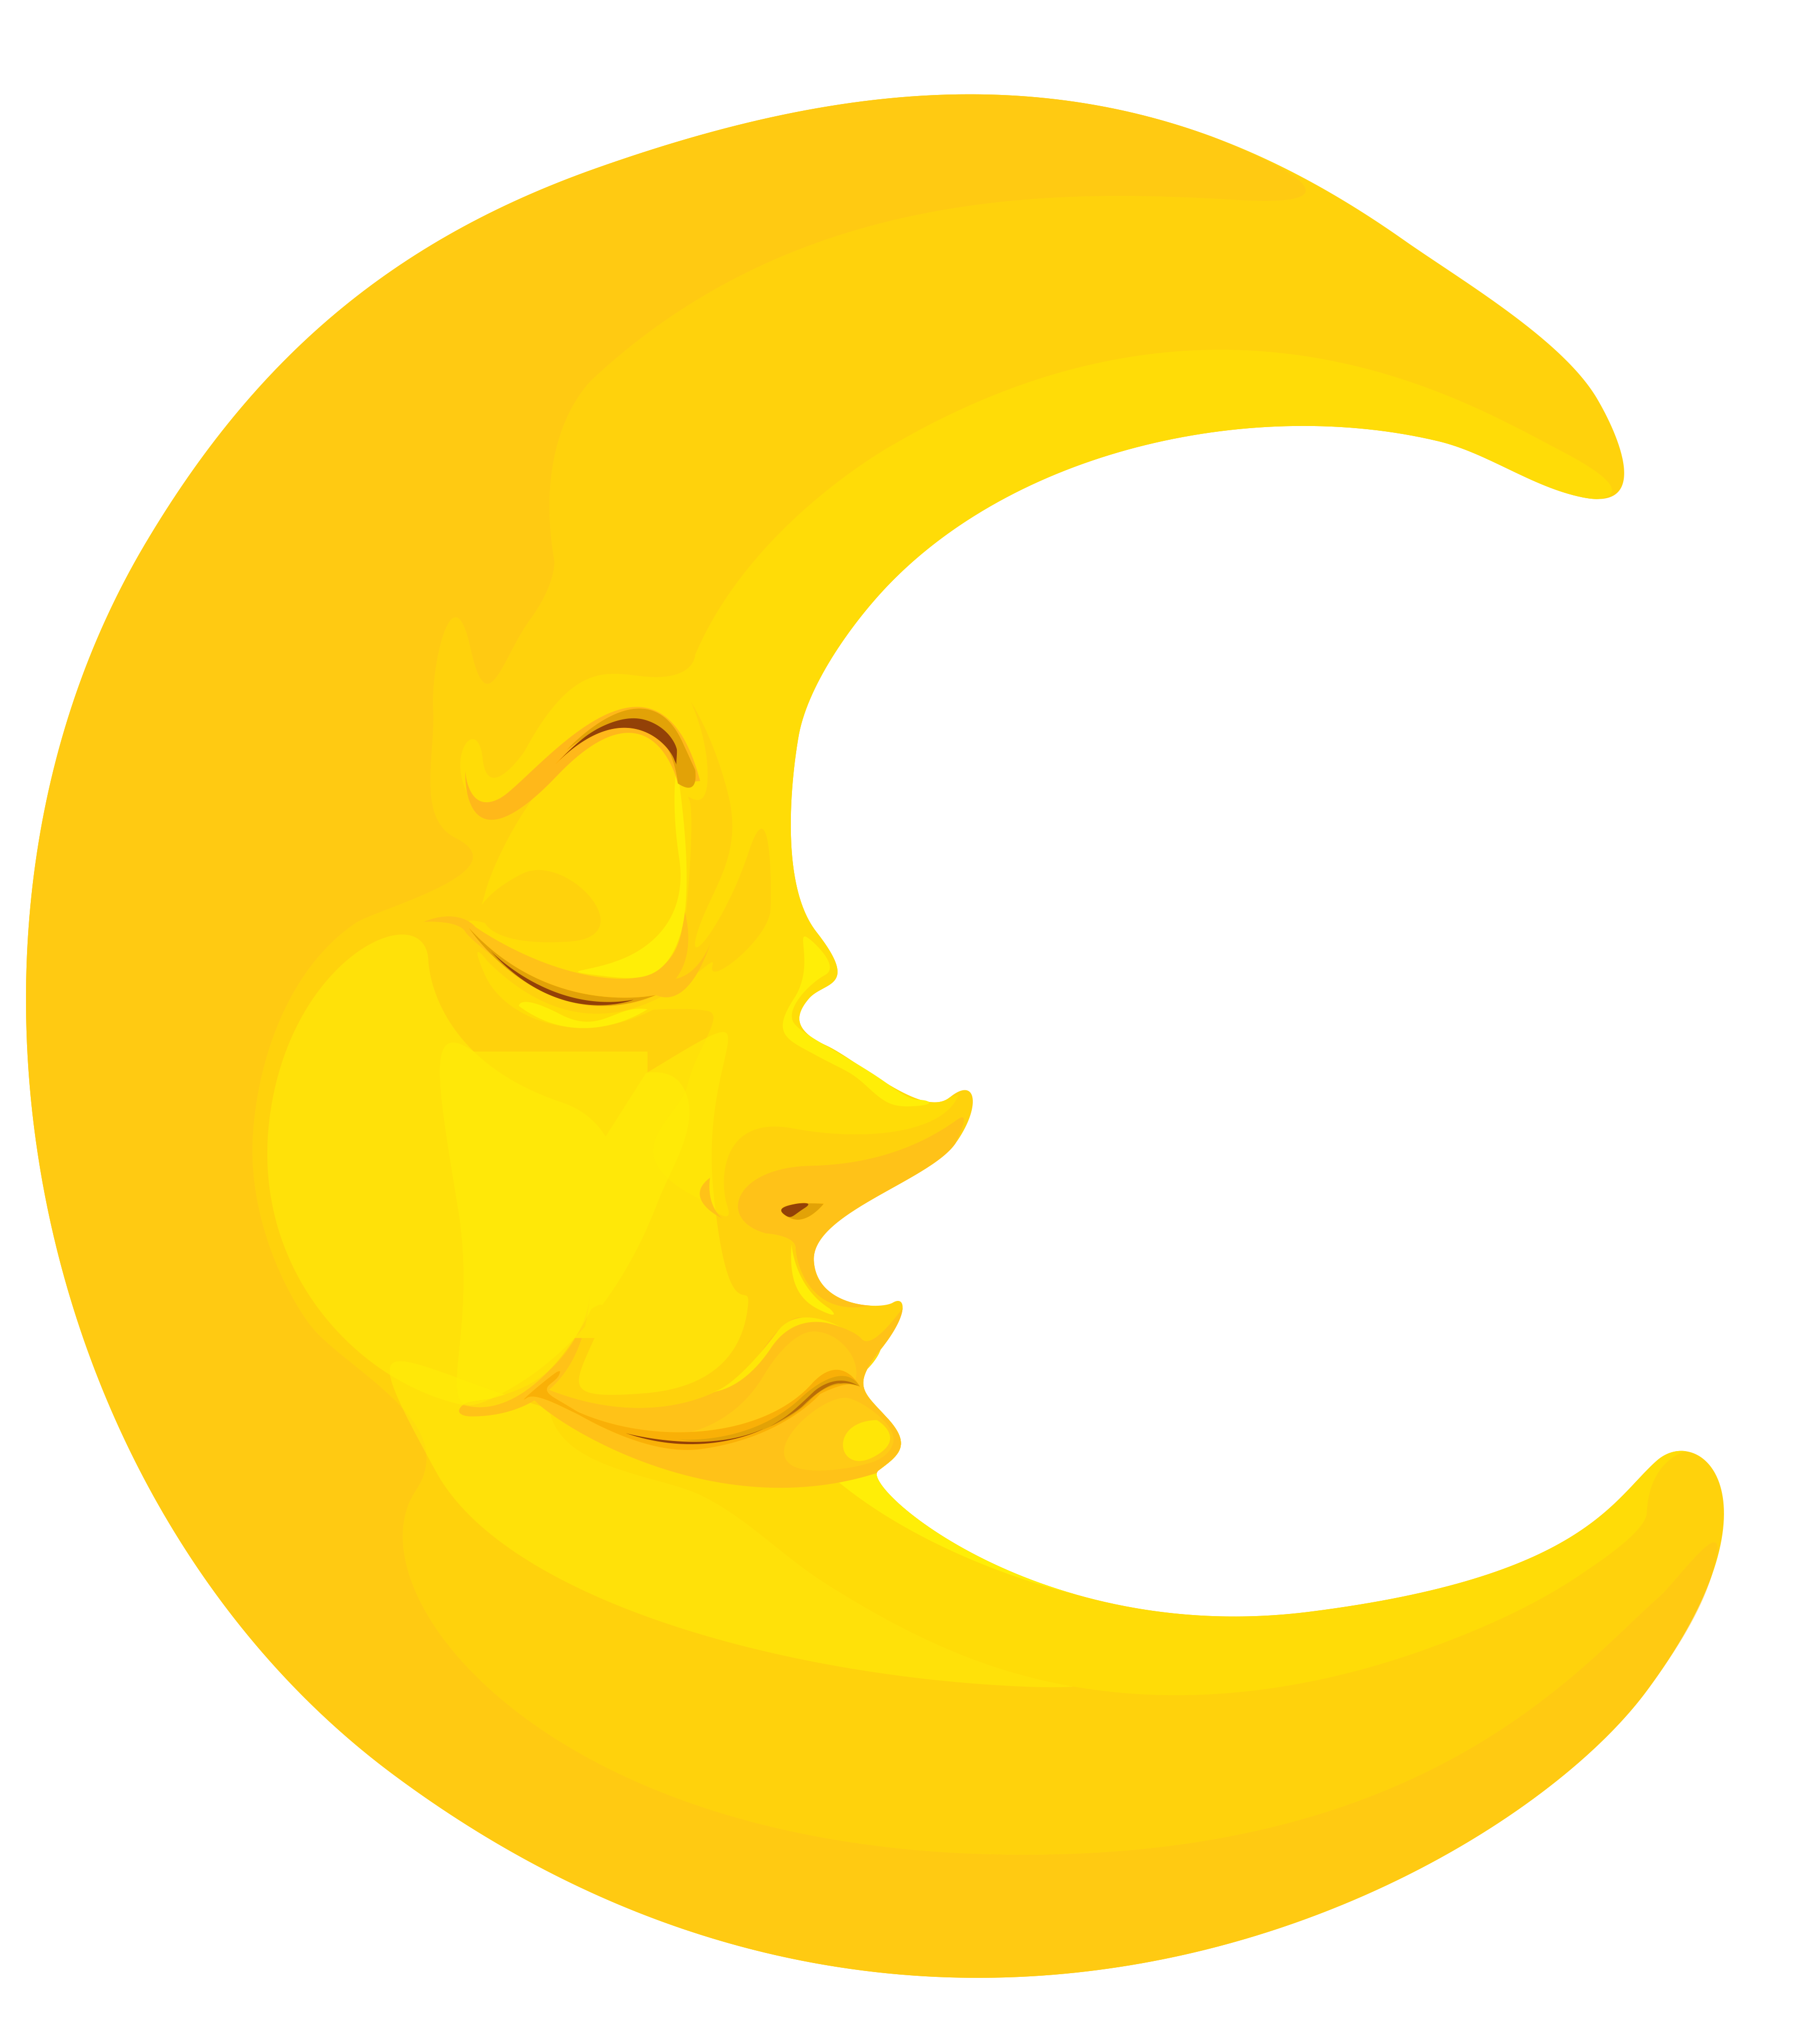 Moon clipart Clipart Images Free Moon moon%20clipart